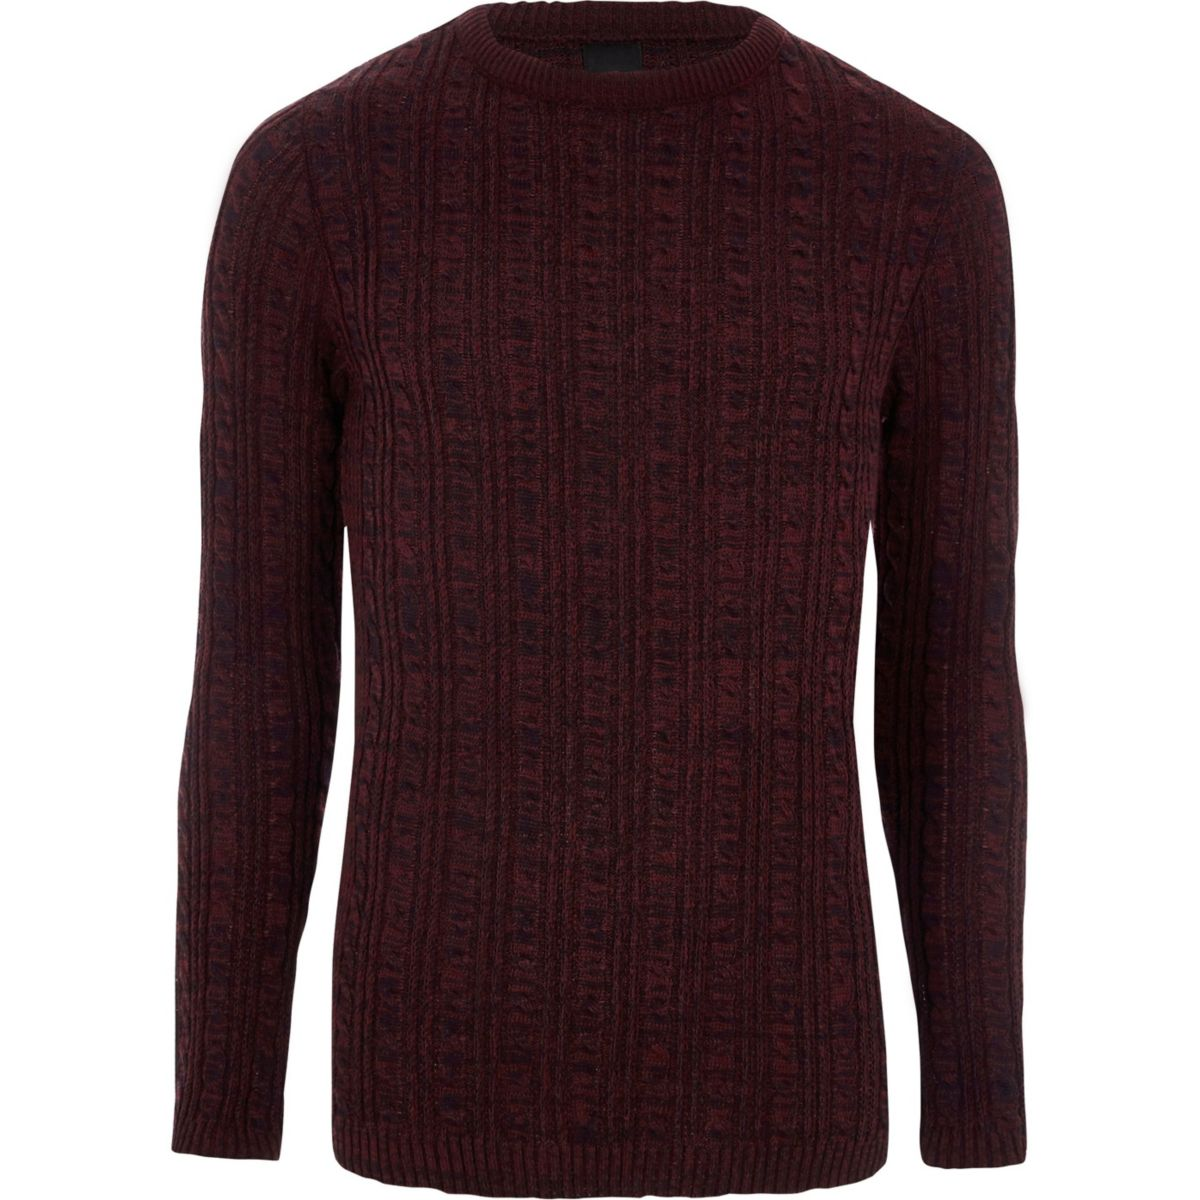 Burgundy cable knit muscle fit jumper